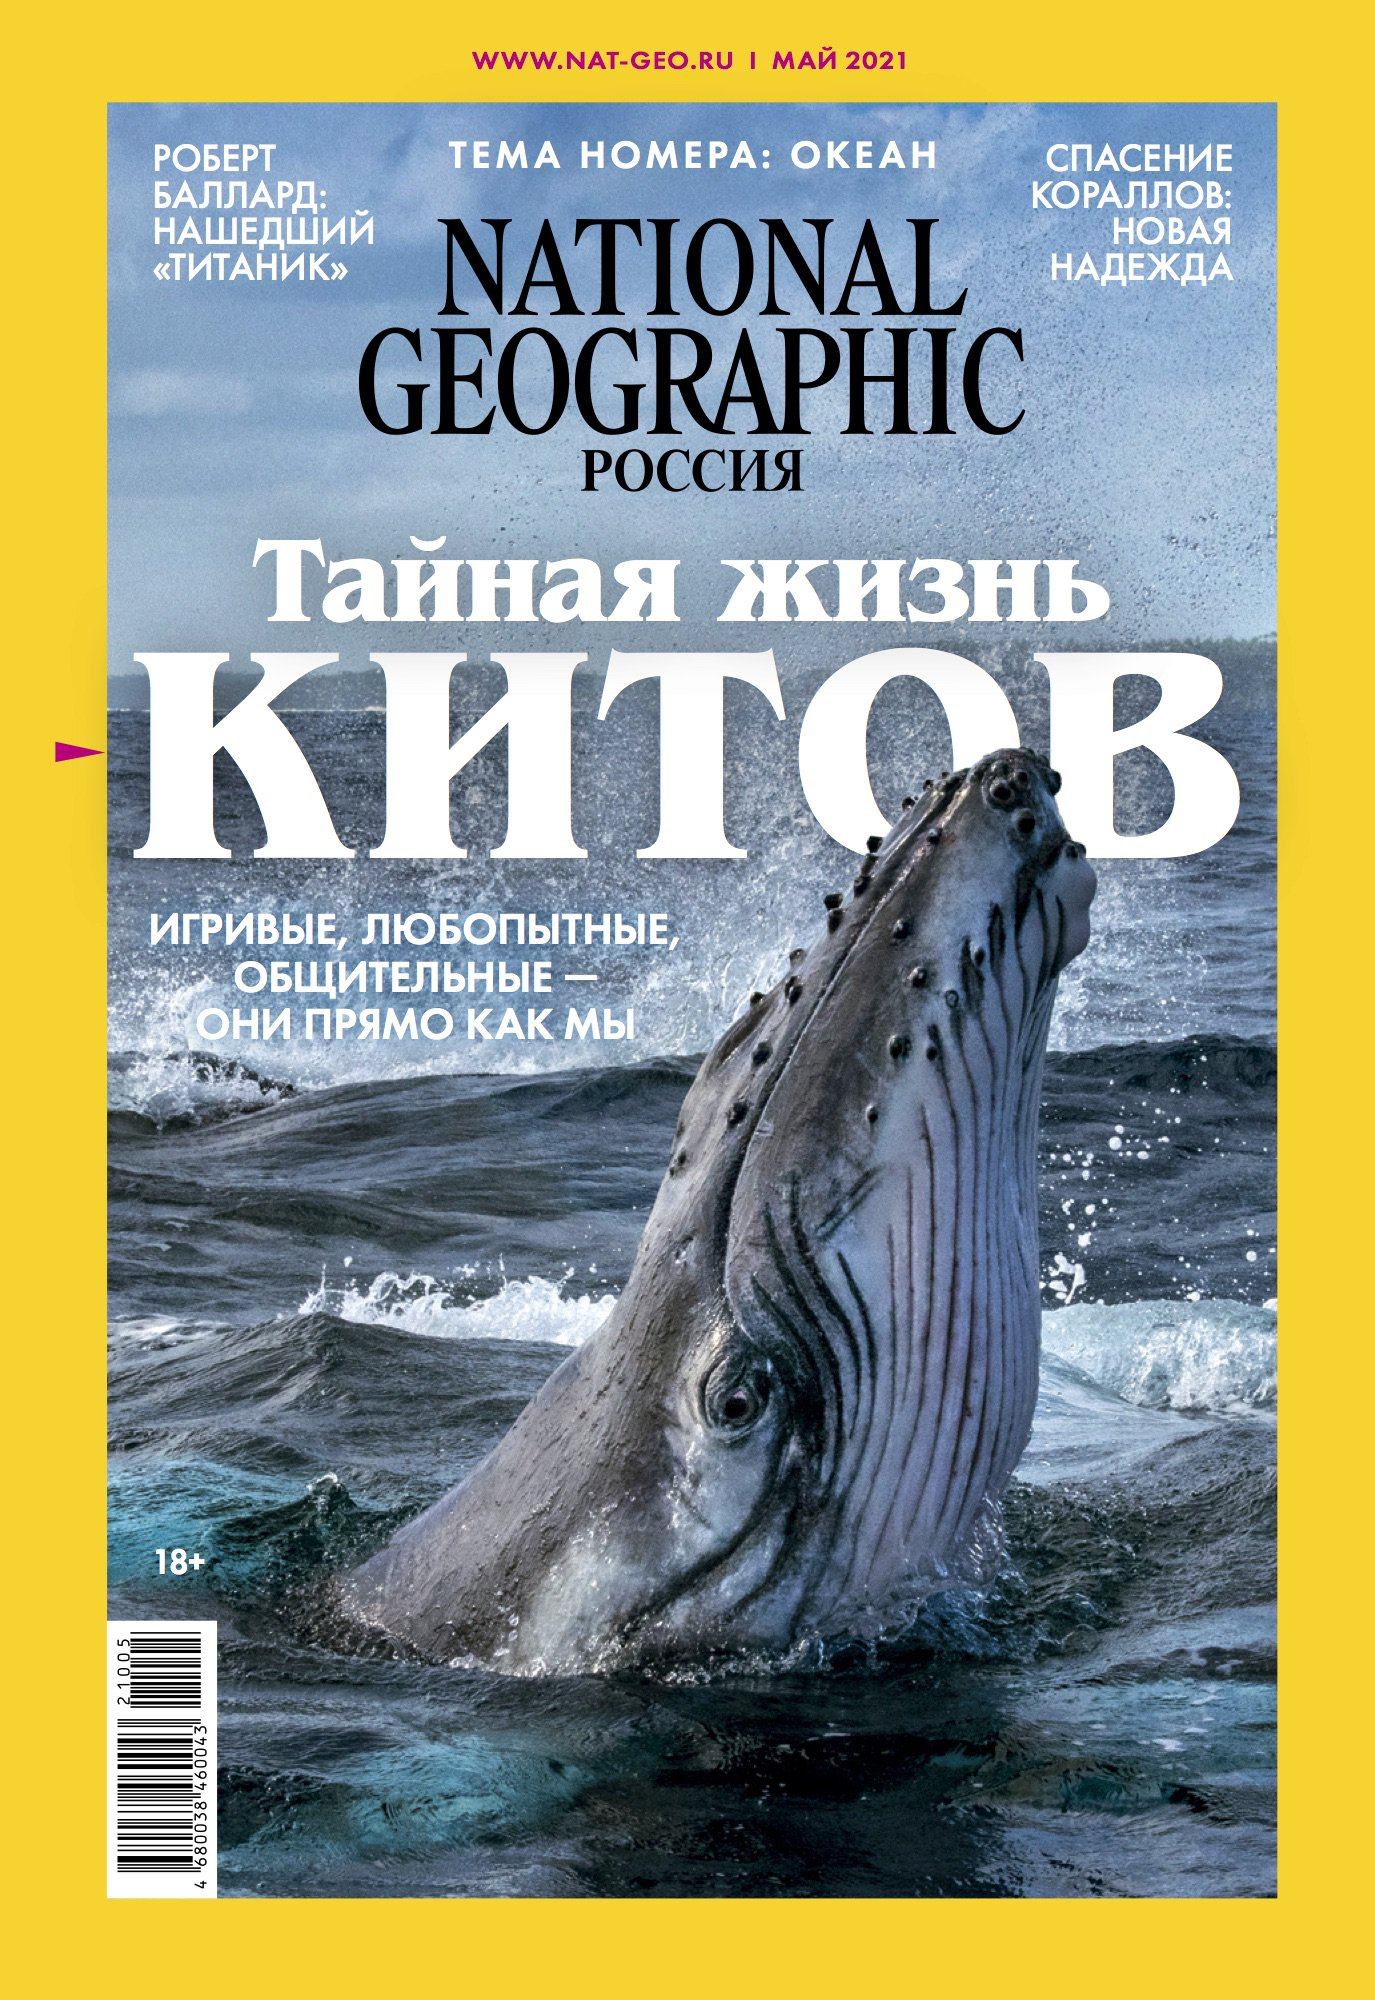 National Geographic Россия №209, май 2021